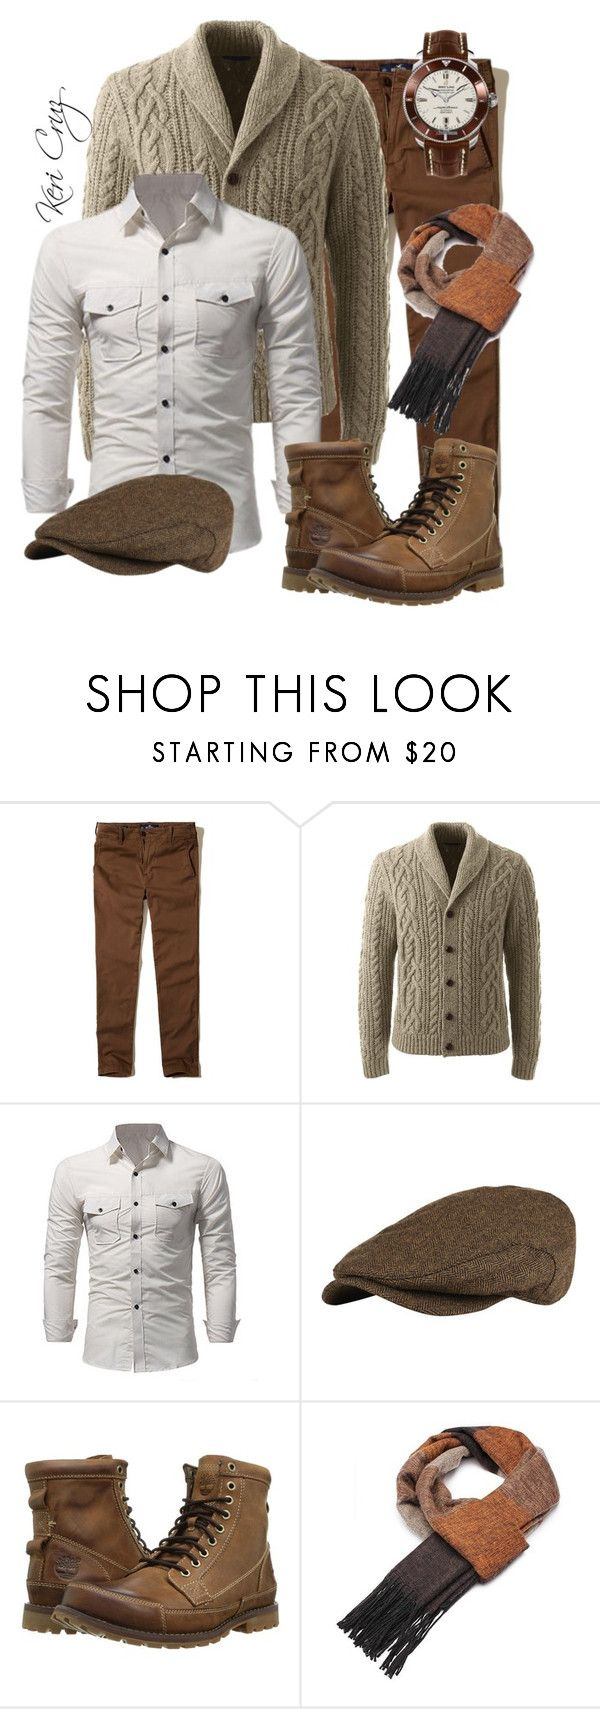 """The Rugged Gentleman"" by keri-cruz ❤ liked on Polyvore featuring Hollister Co., Lands' End, Superdry, Timberland, Breitling, men's fashion and menswear"